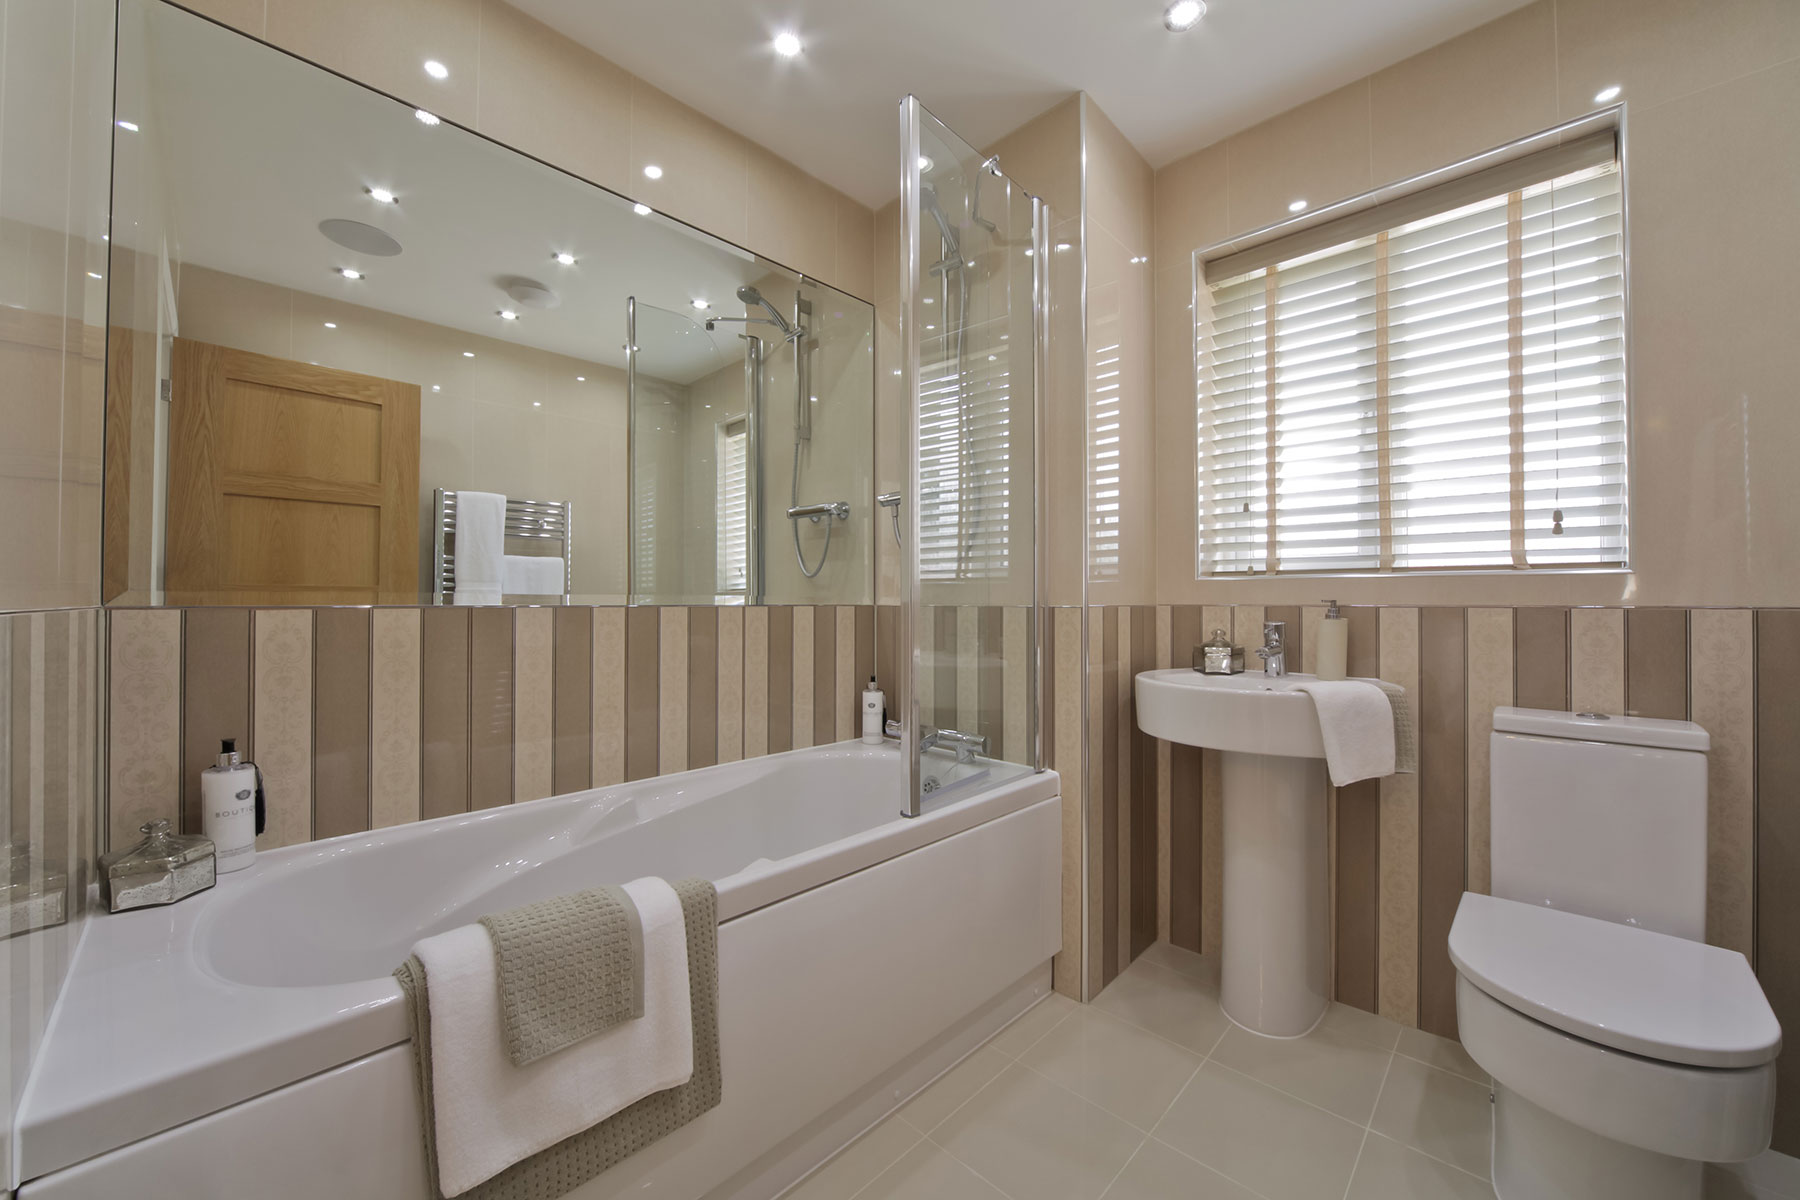 Billington Showhome Bathroom